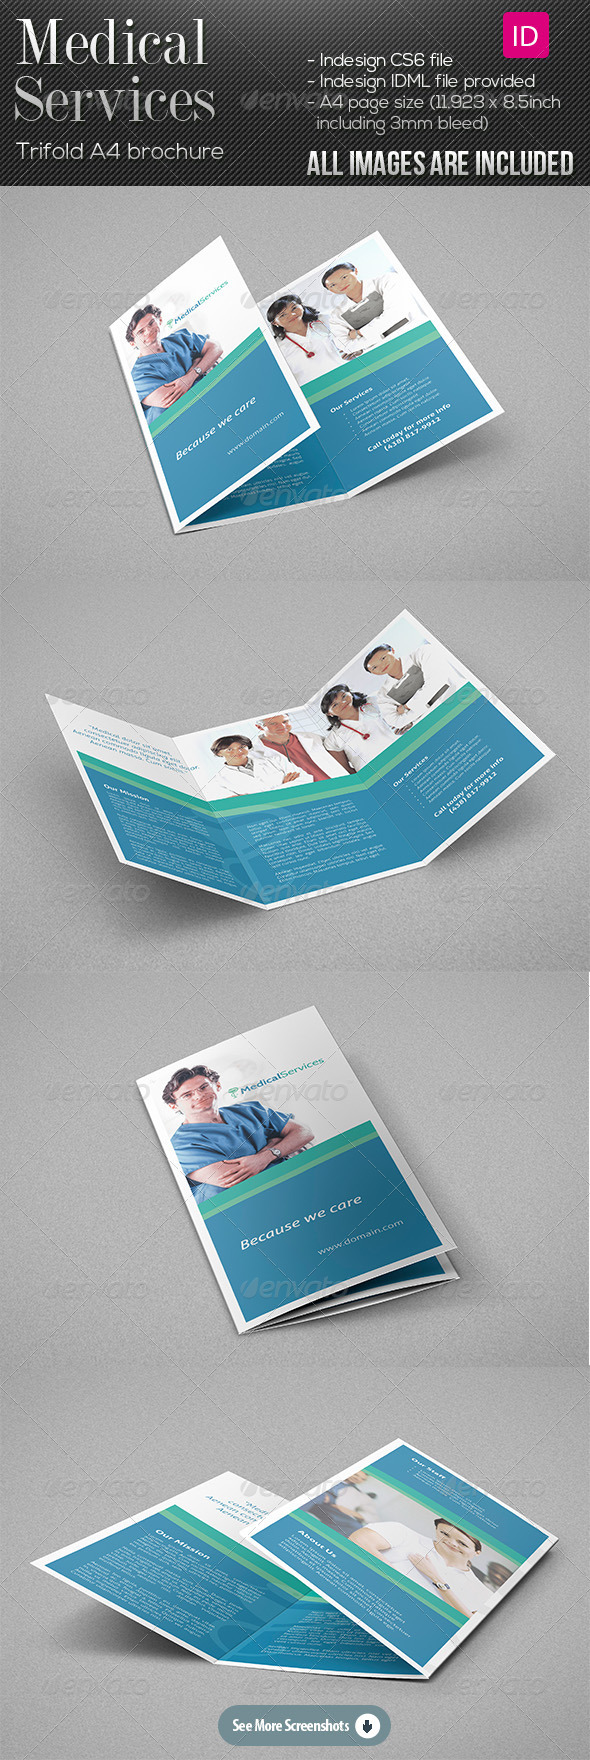 GraphicRiver Medical Services Trifold Brochure 7882658